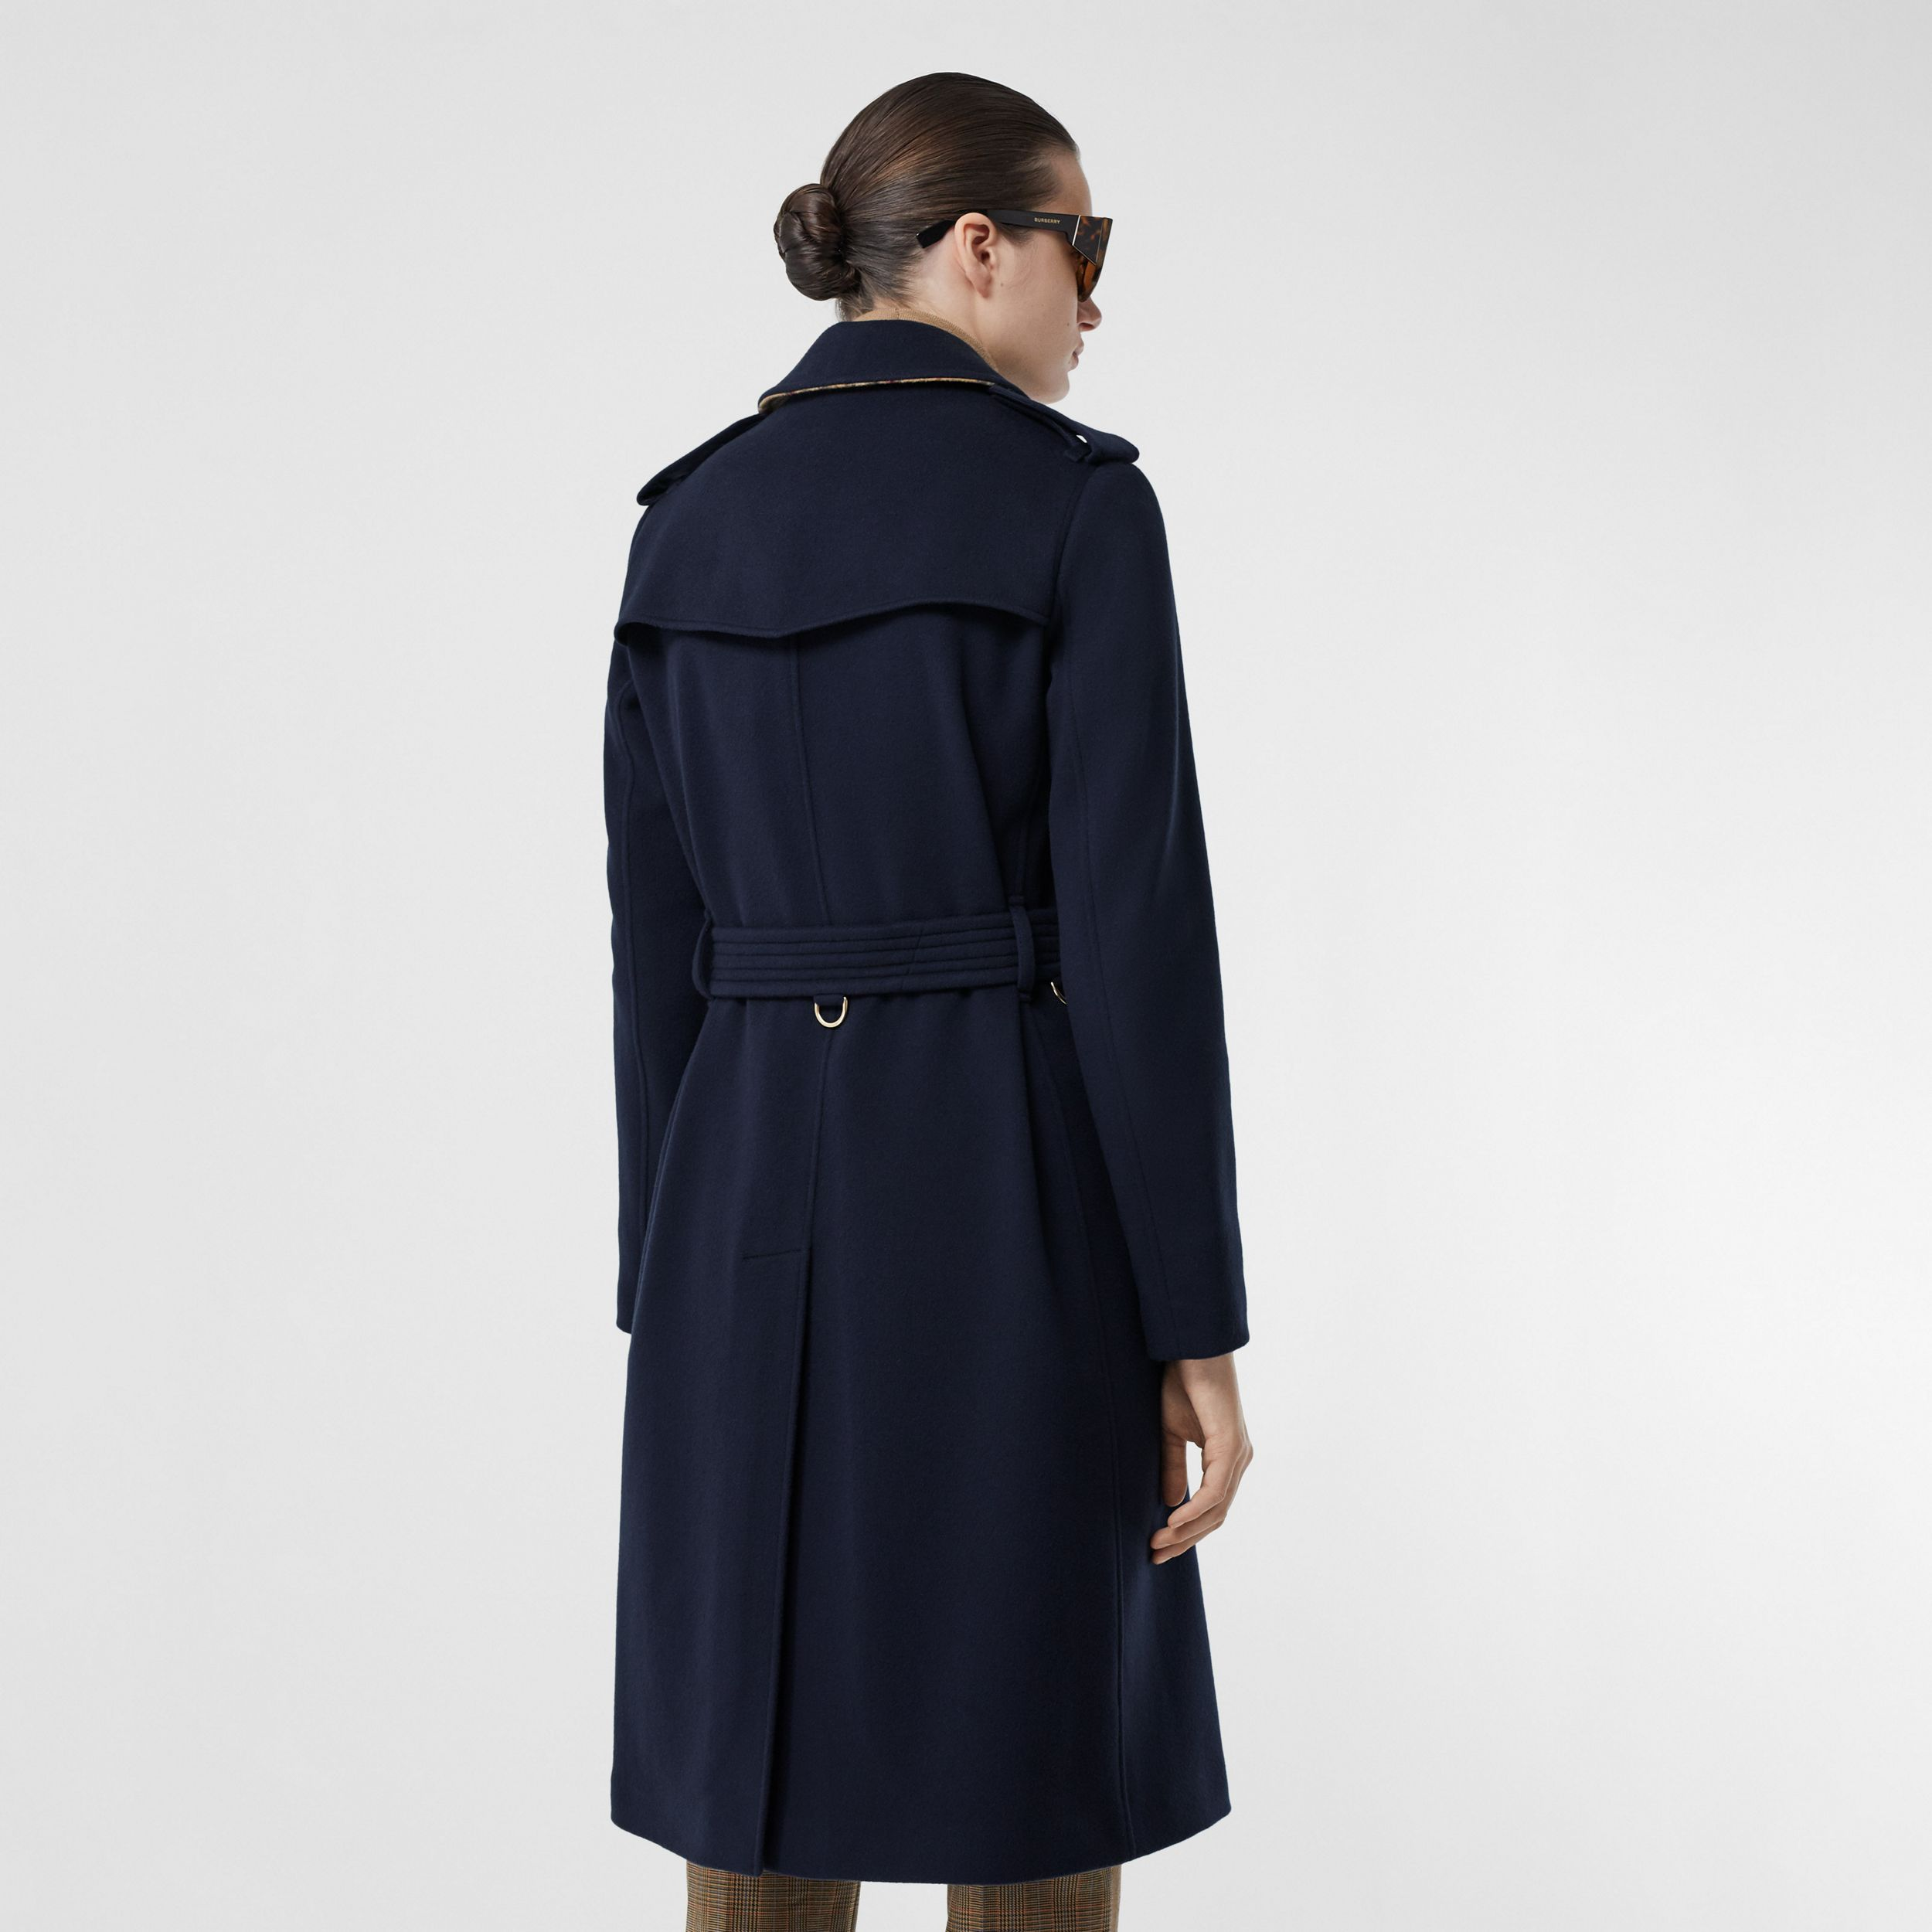 Cashmere Trench Coat in Navy - Women | Burberry - 3